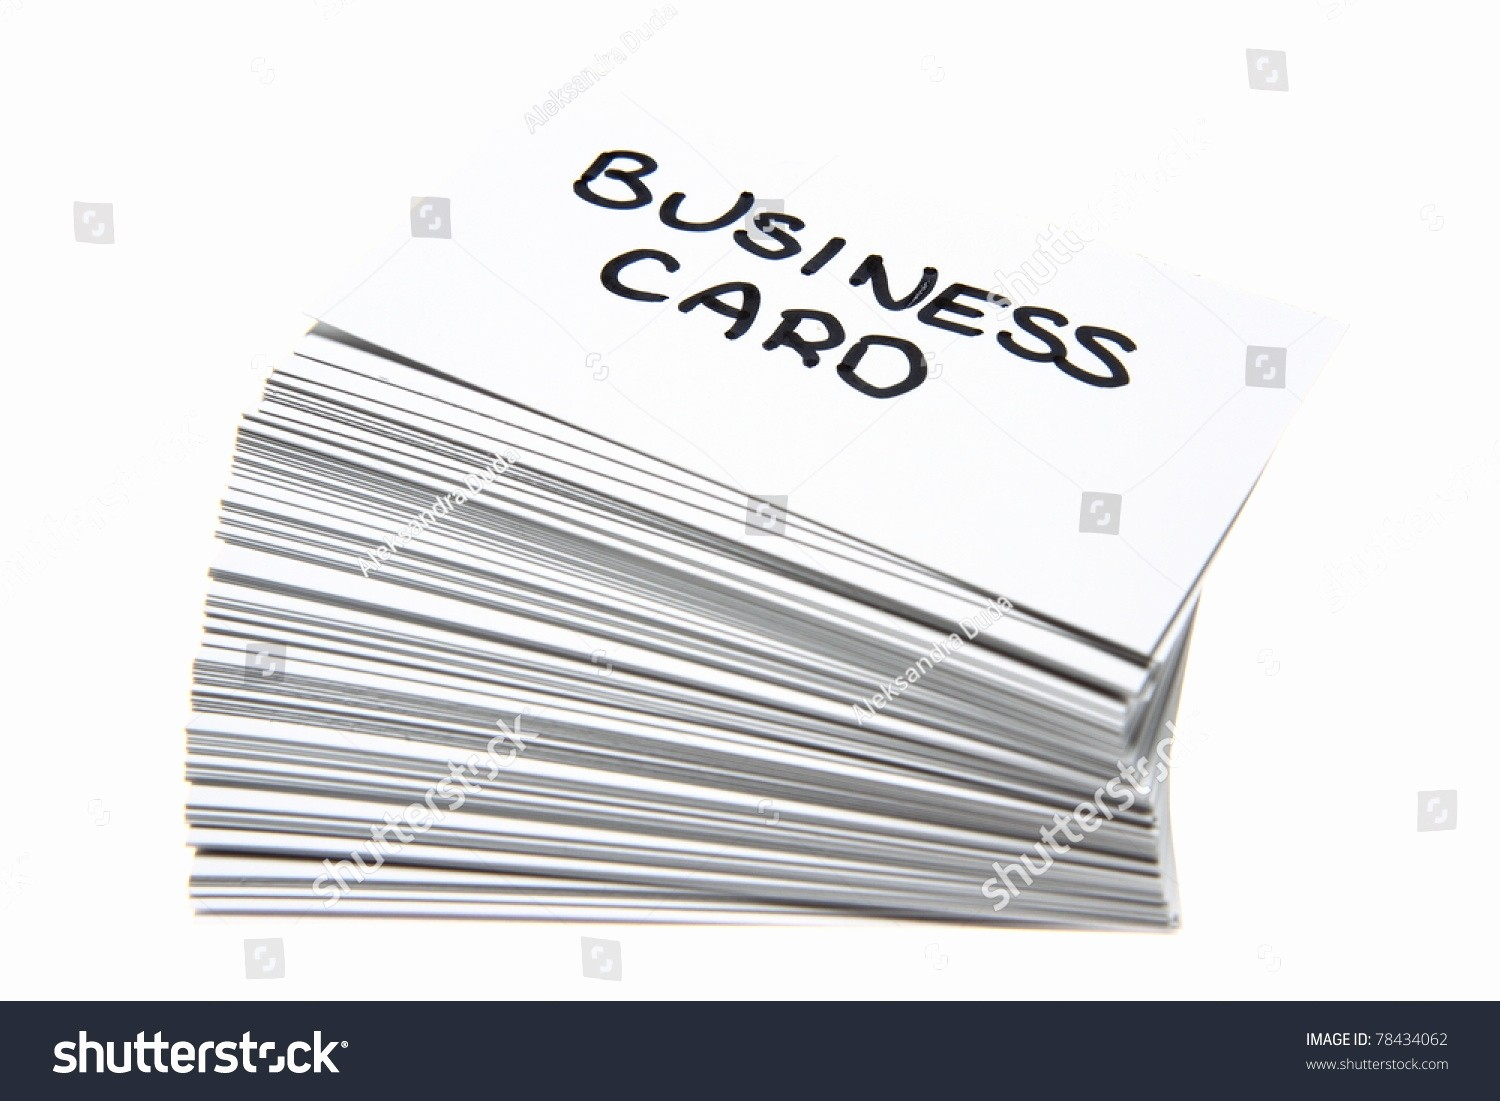 Royal Brites Business Card Template Lovely top 8 Royal Brites Business Cards Matte Template